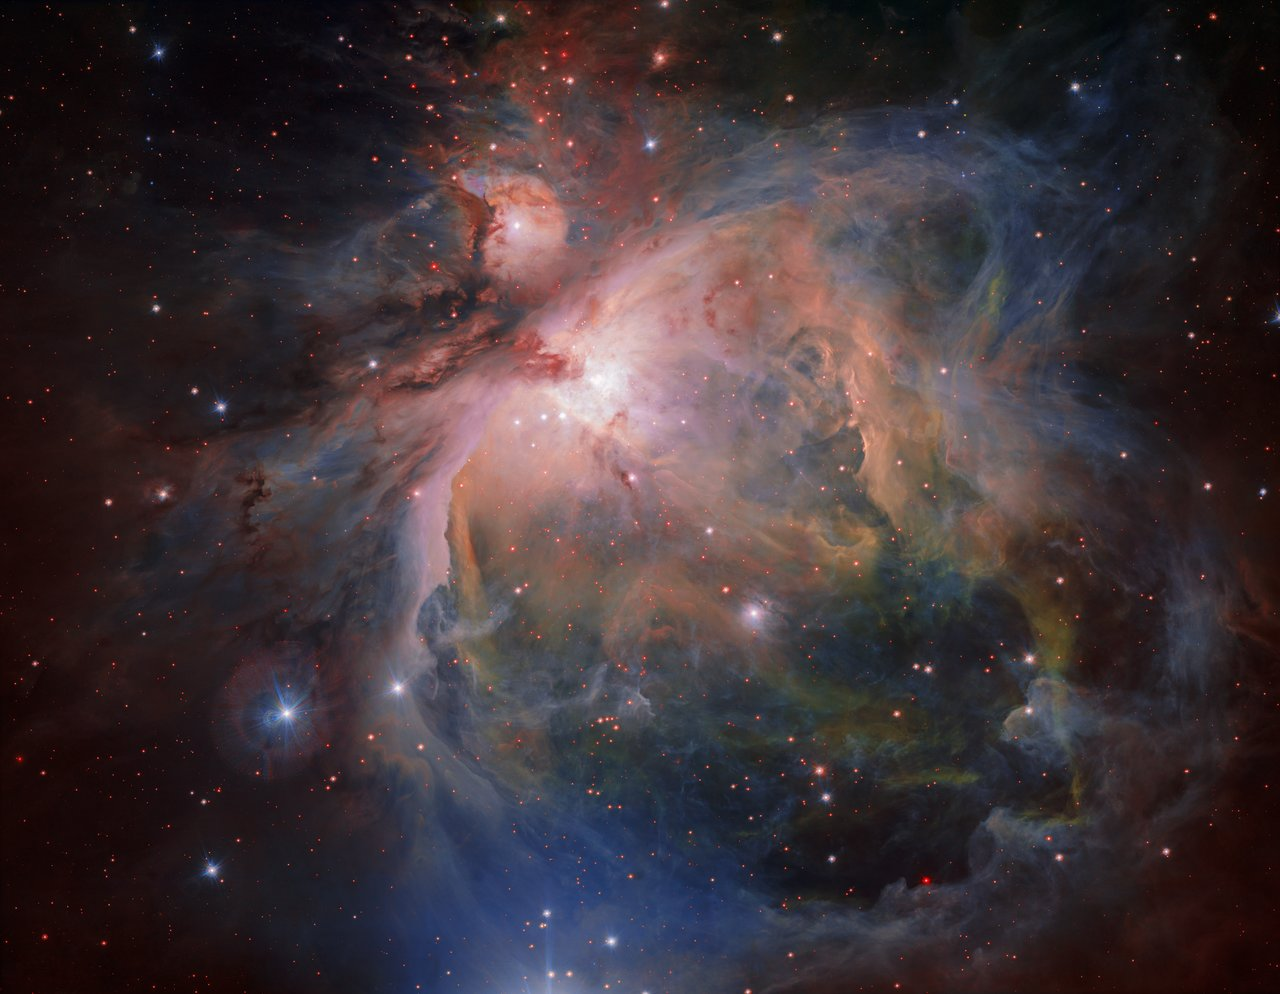 OmegaCAM — the wide-field optical camera on ESO's VLT Survey Telescope (VST) — has captured the spectacular Orion Nebula and its associated cluster of young stars in great detail, producing this beautiful new image. This famous object, the birthplace of many massive stars, is one of the closest stellar nurseries, at a distance of about 1350 light-years.